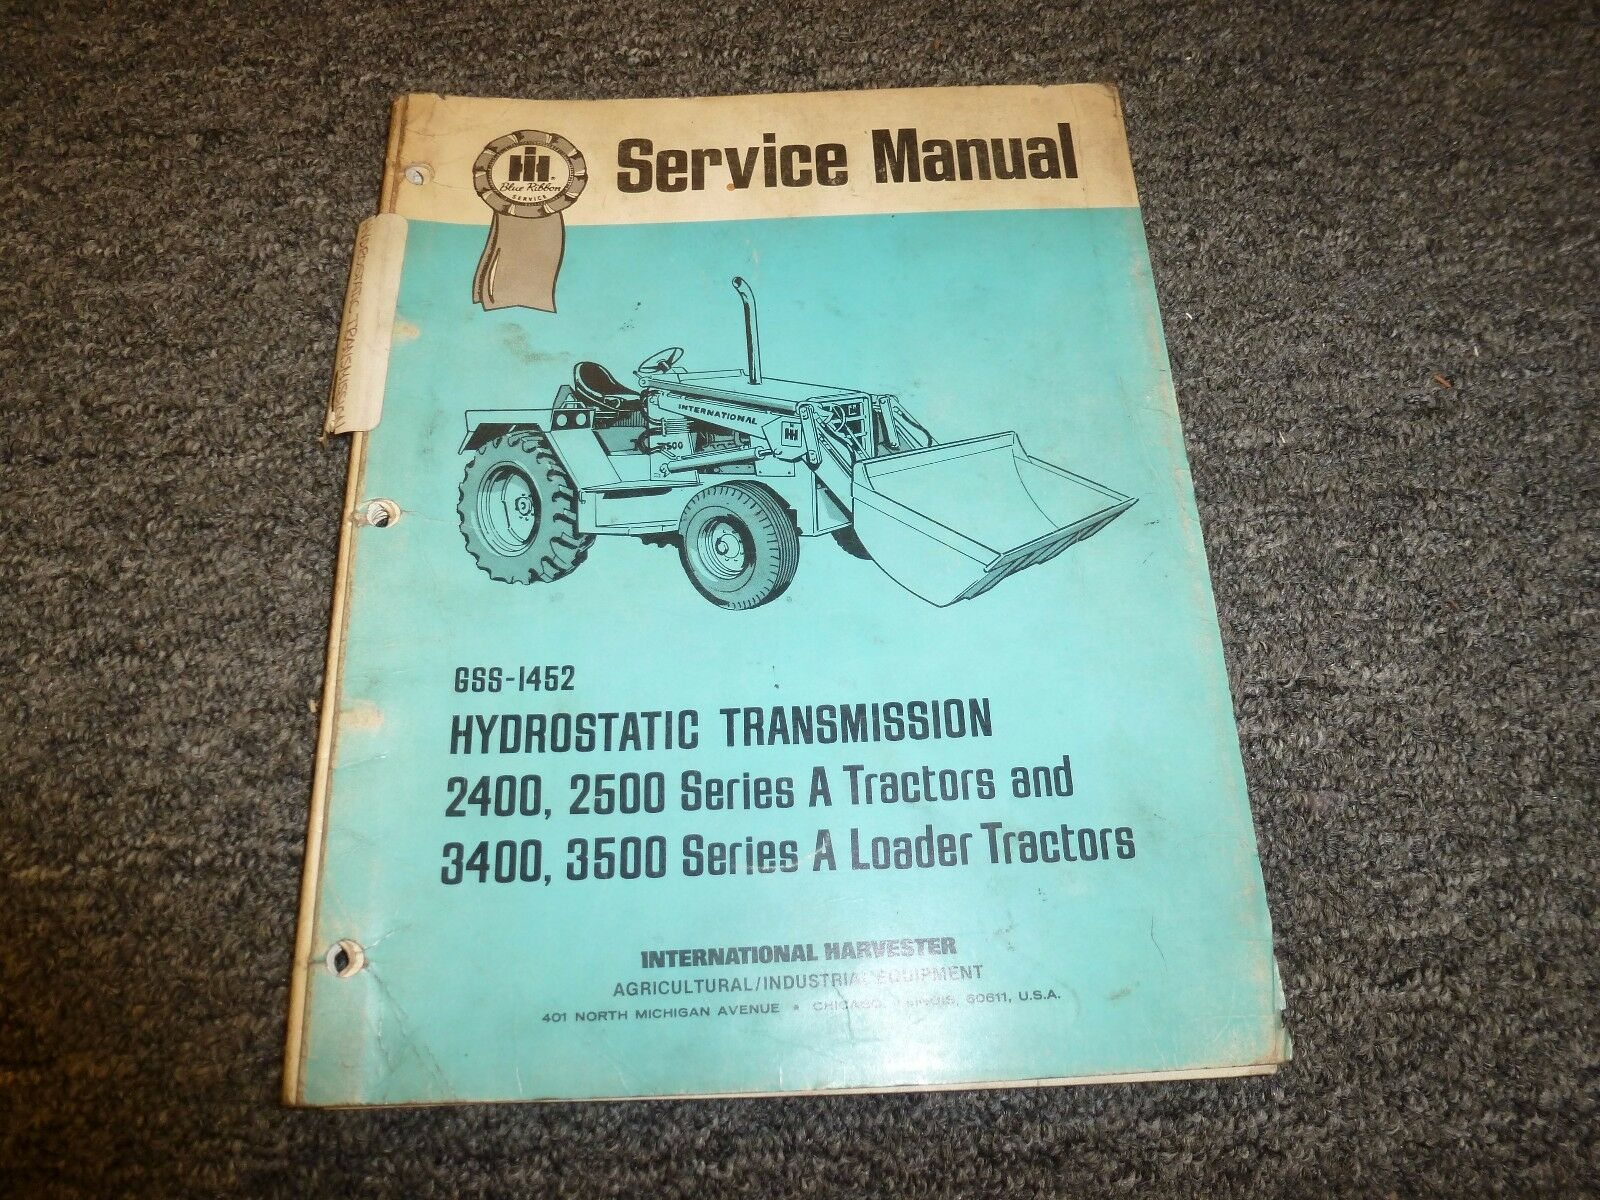 International Harvester IH 2400 2500 Tractor Transmission Service Repair  Manual 1 of 1Only 1 available ...